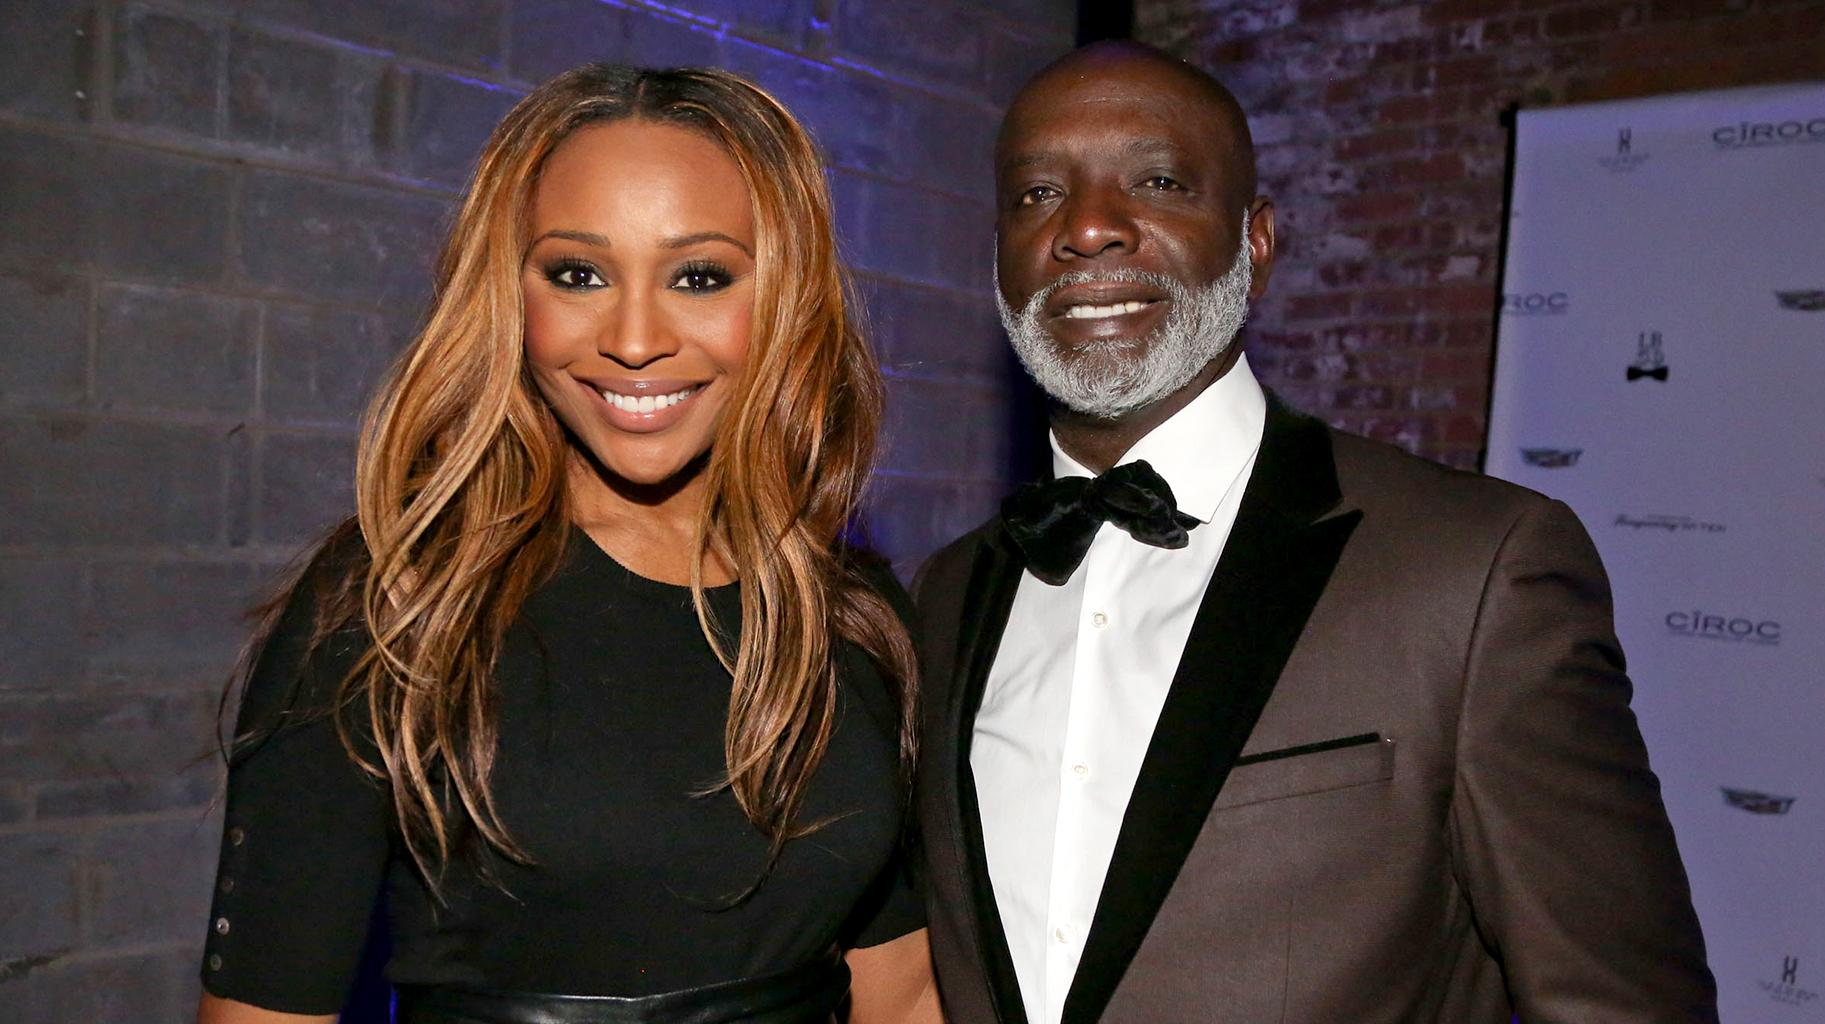 Cynthia Bailey Wants To Be There For Her Ex Peter Thomas After Getting In Trouble With The Law - Here's Why!